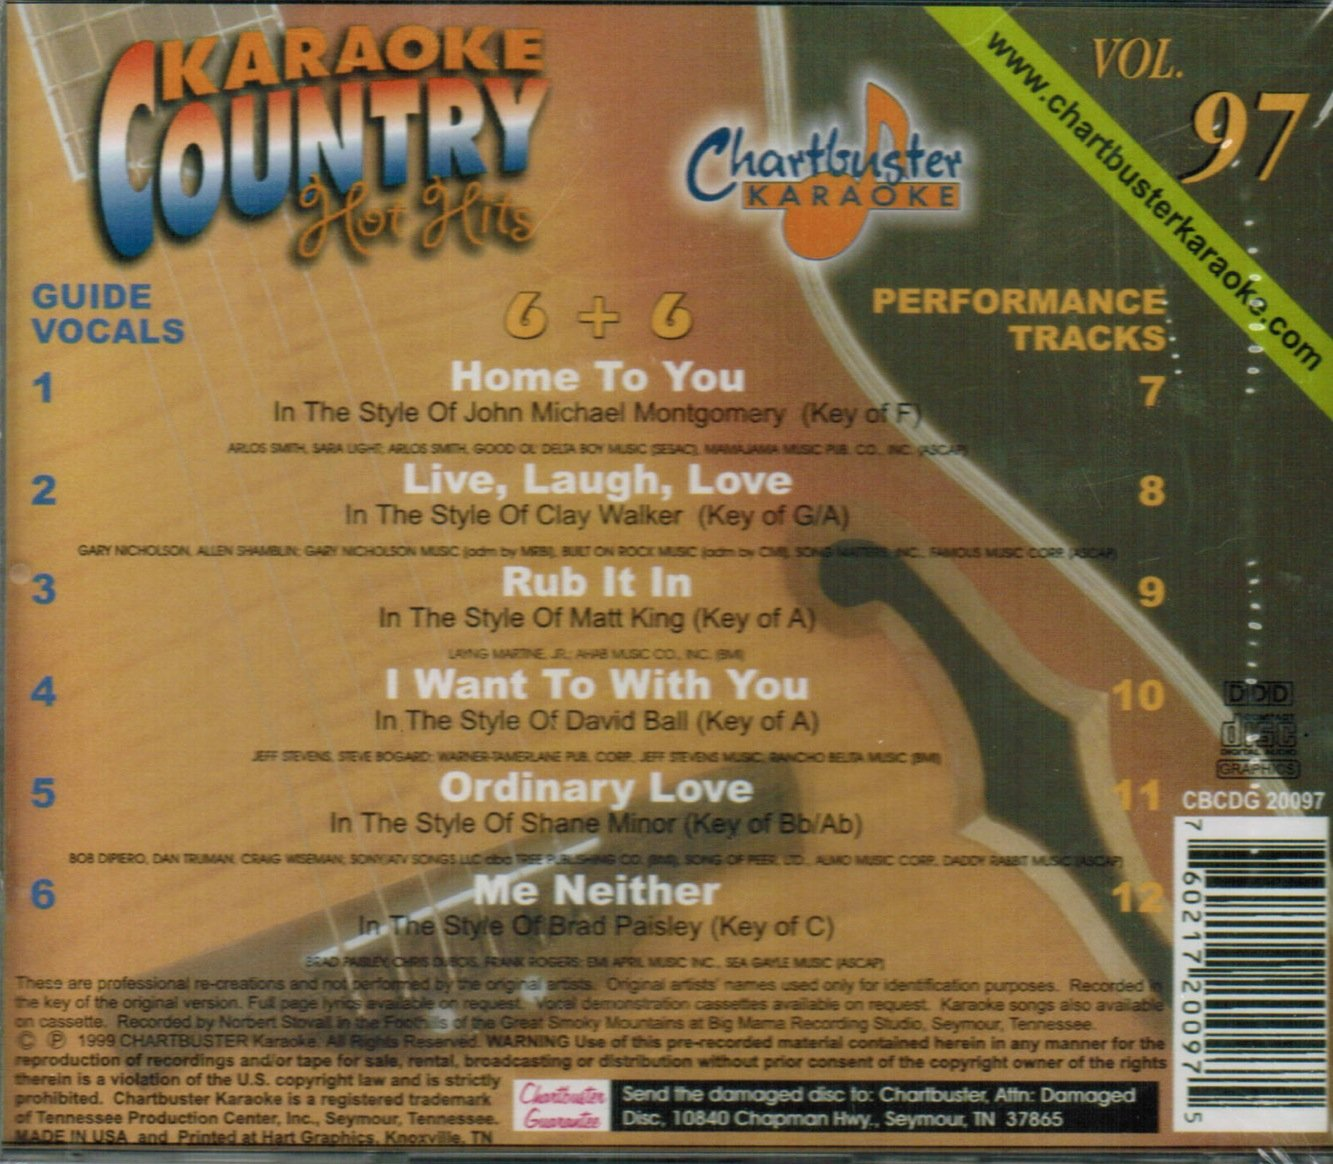 Chartbuster Karaoke Country Hot Hits Vol 97 by